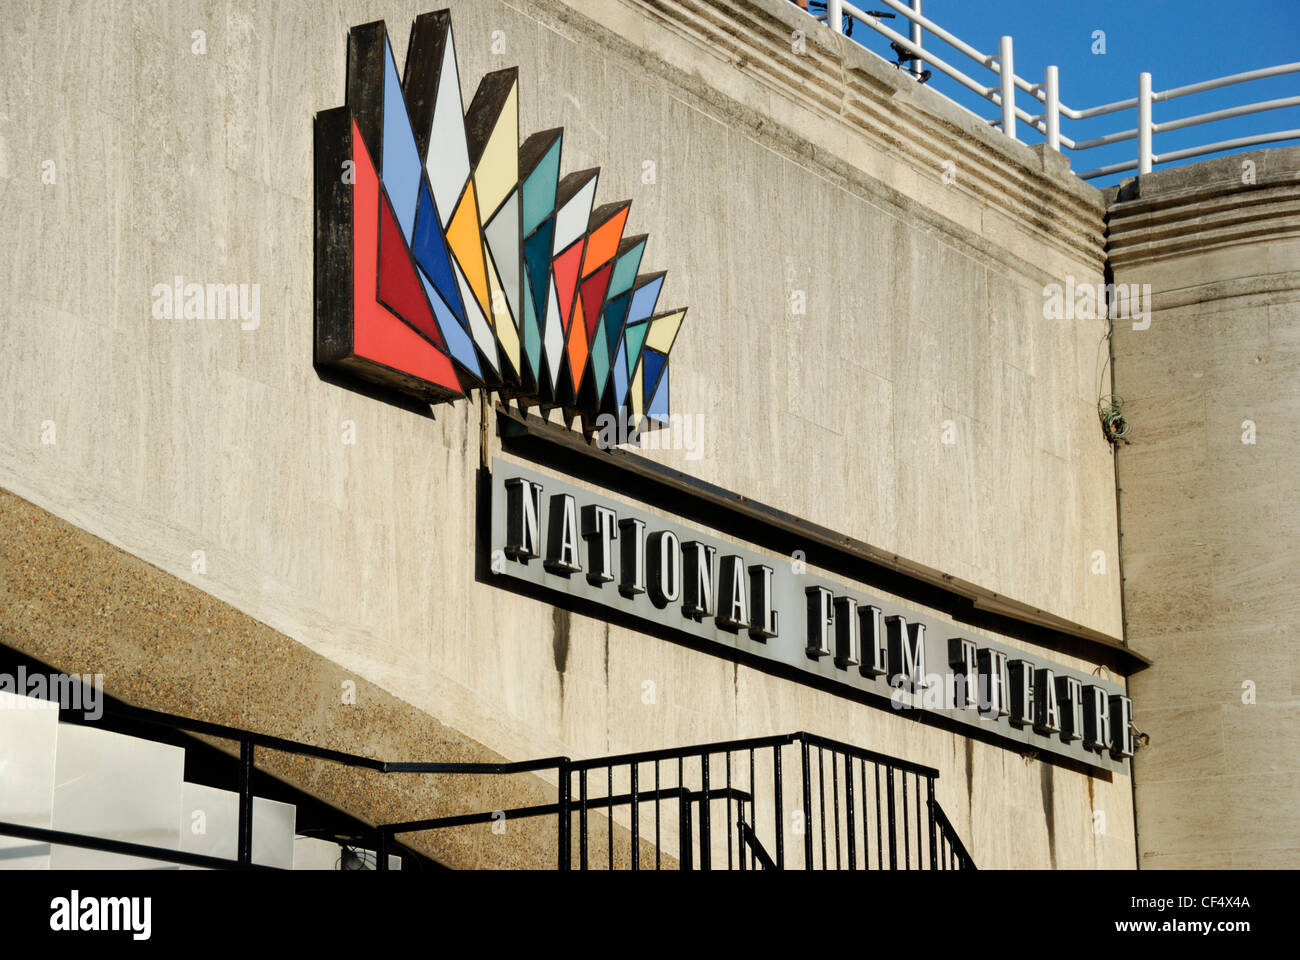 National Film Theatre sign and logo on a wall on the Southbank. - Stock Image